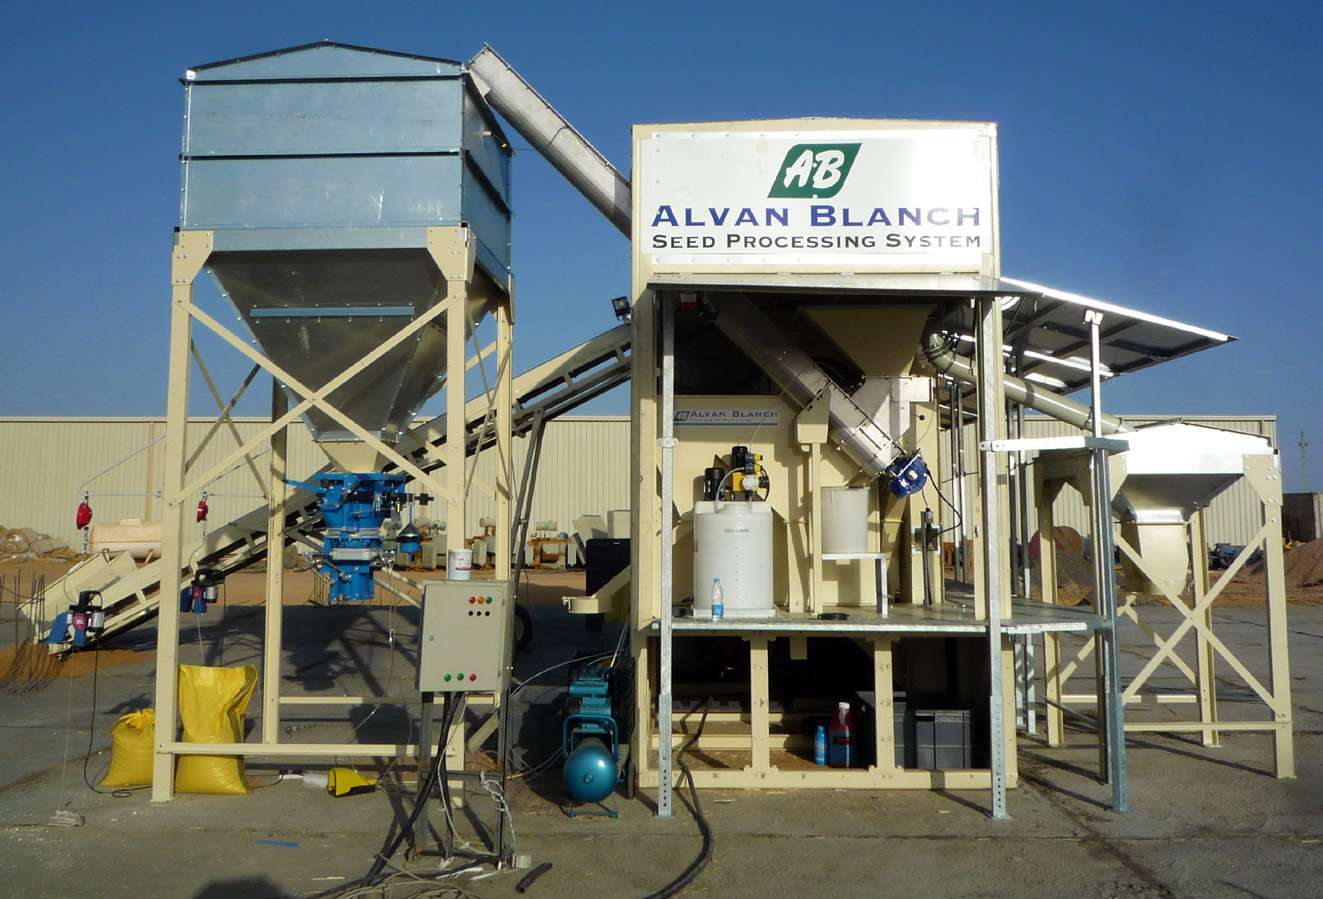 Alvan Blanch Skid Mounted Seed Cleaning Plant Sudan and Egypt Page 4 Image 0002